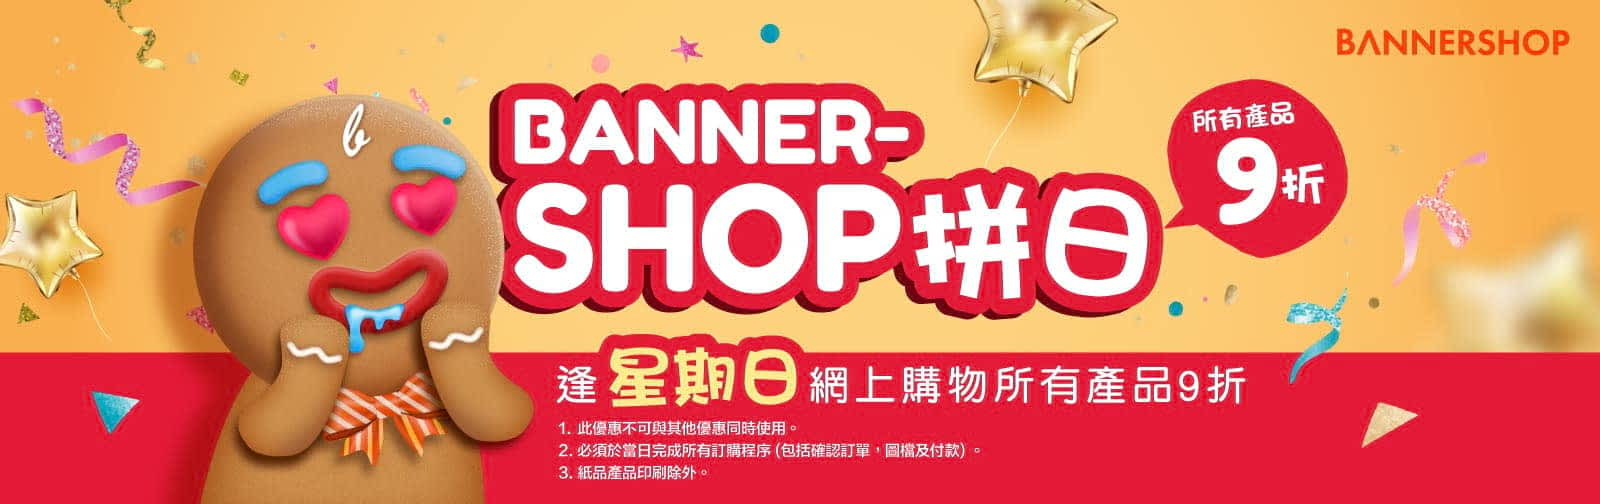 BANNER-SHOP-PING-DAY